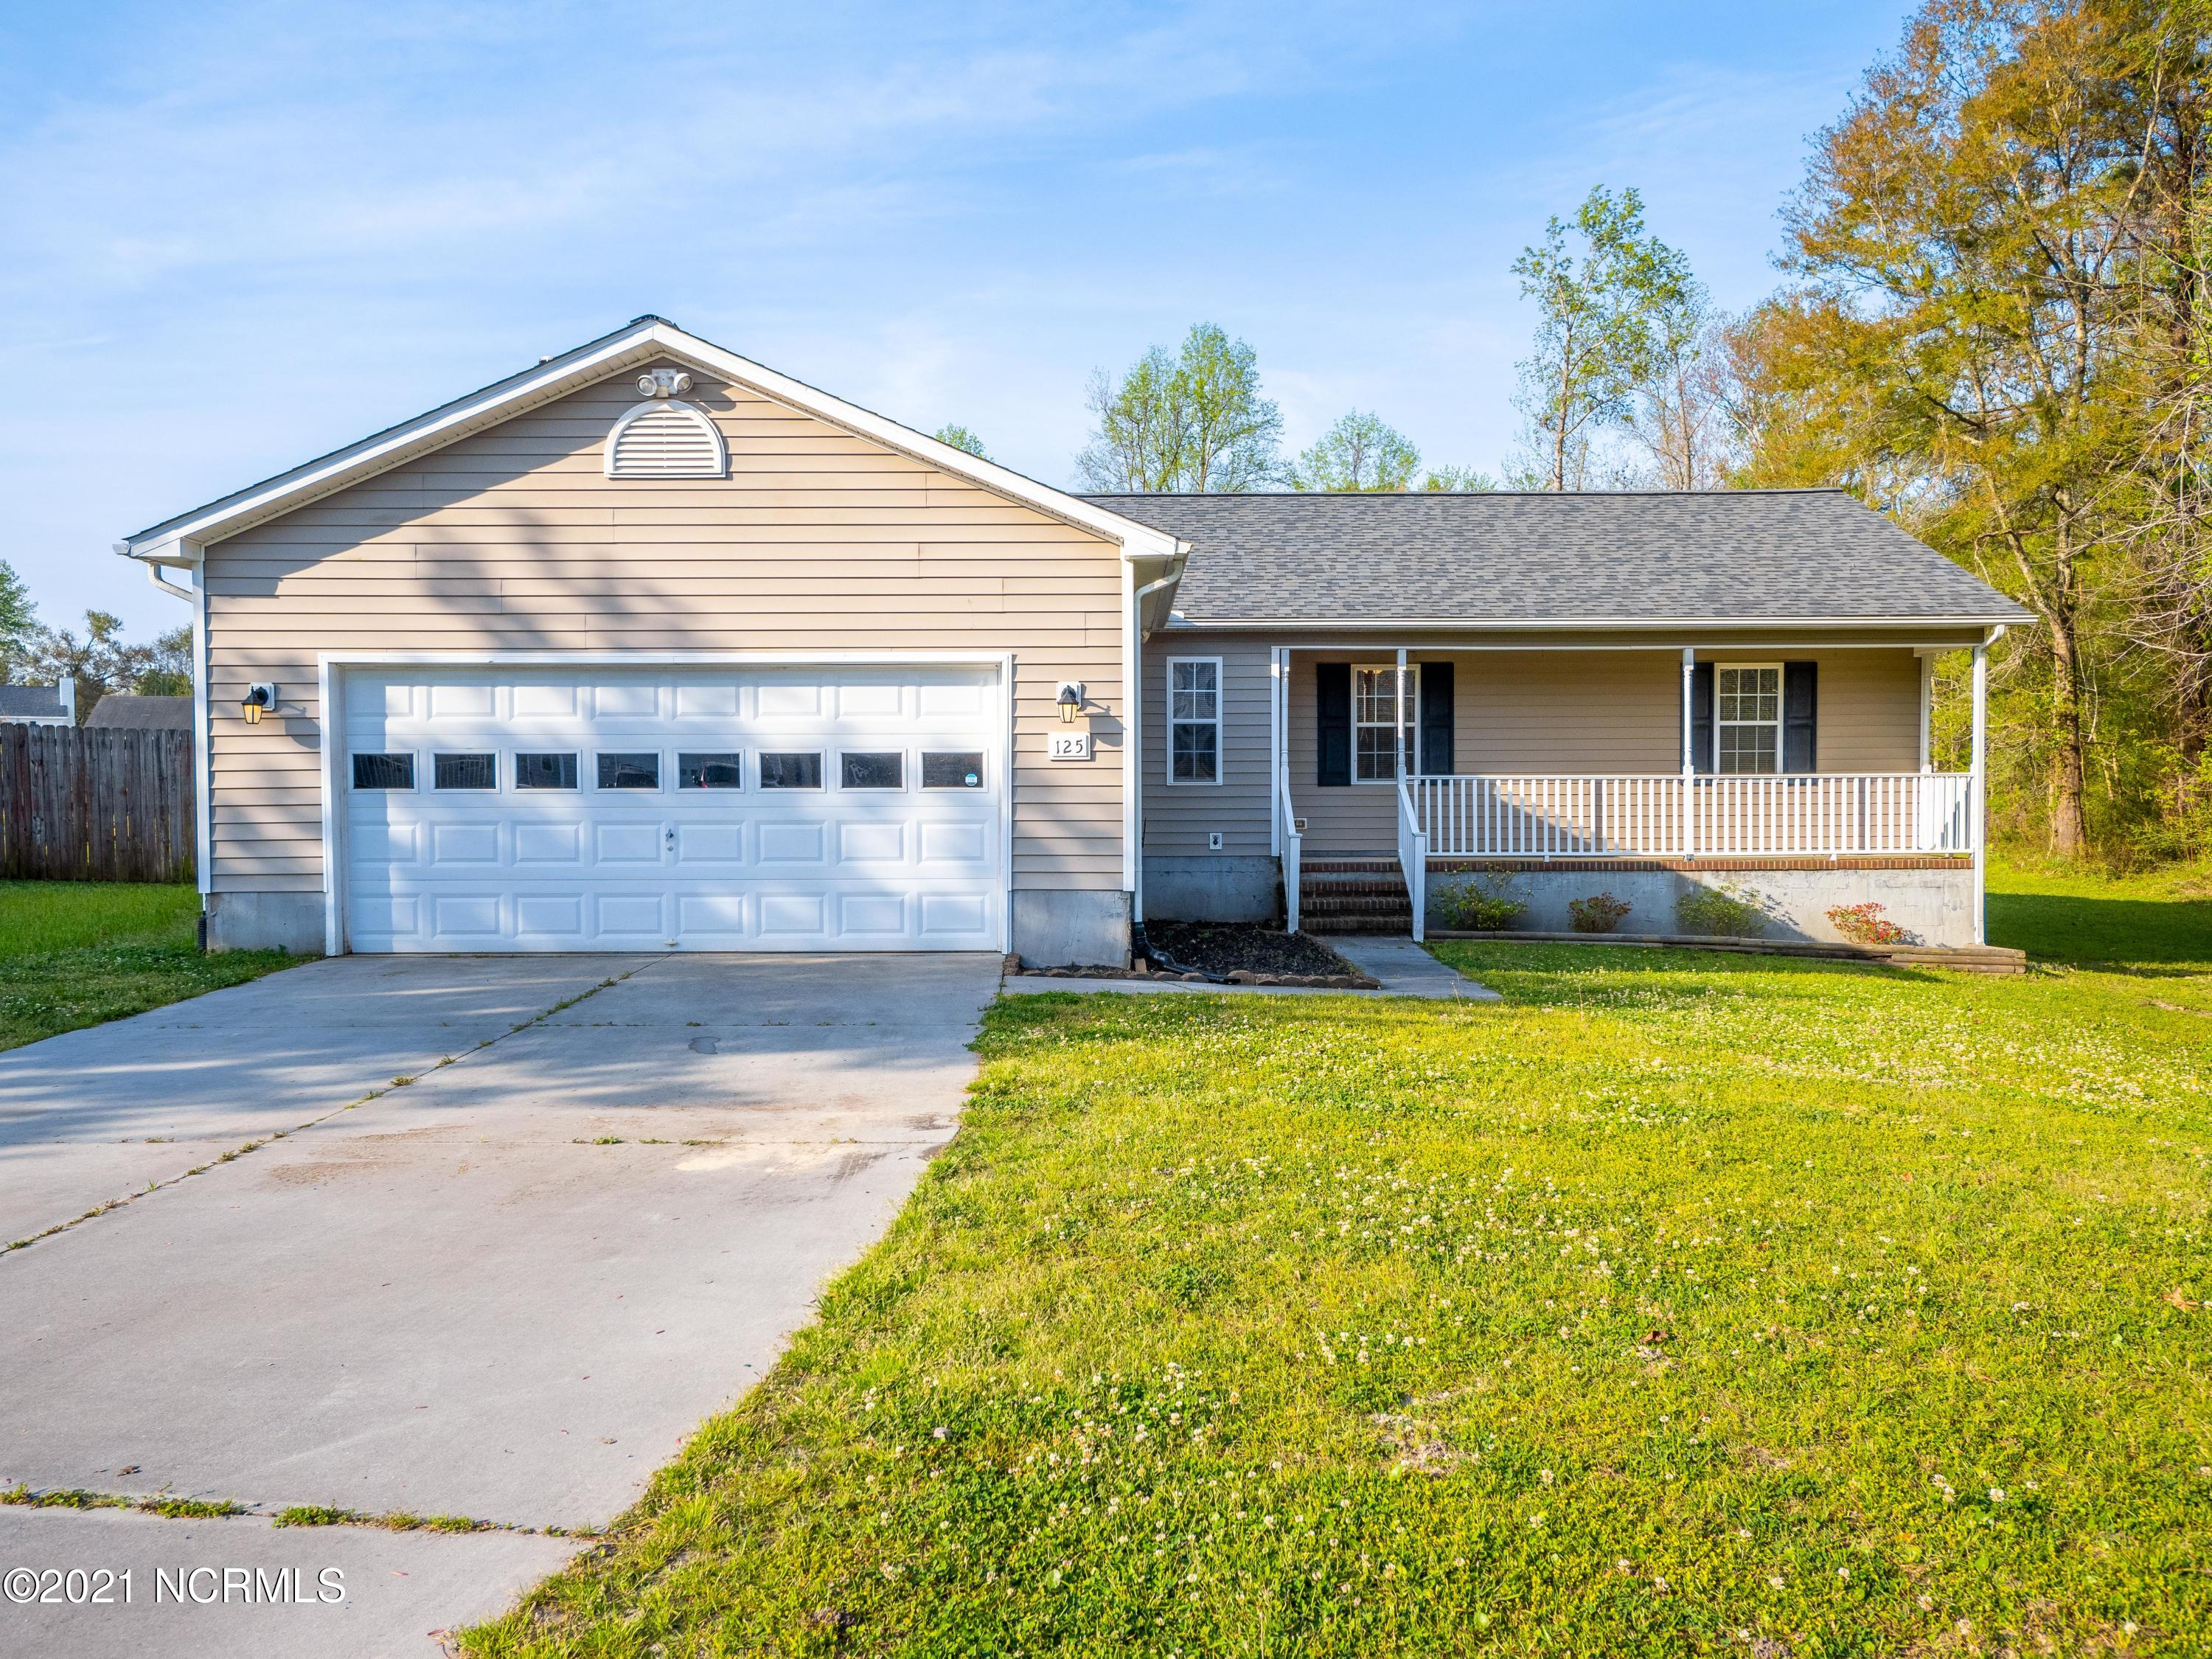 Move In Ready 3/2 with 2 car garage. This home comes complete with a fenced in yard and sits at the end of a dead end street with no HOA and no city taxes. All the privacy you could want but still just a few minutes to everything! The roof was recently replaced in 2019, carpet replaced in 2018, and the appliances are newer too.  Get your cozy on with the wood burning fireplace in the living room with vaulted ceilings.